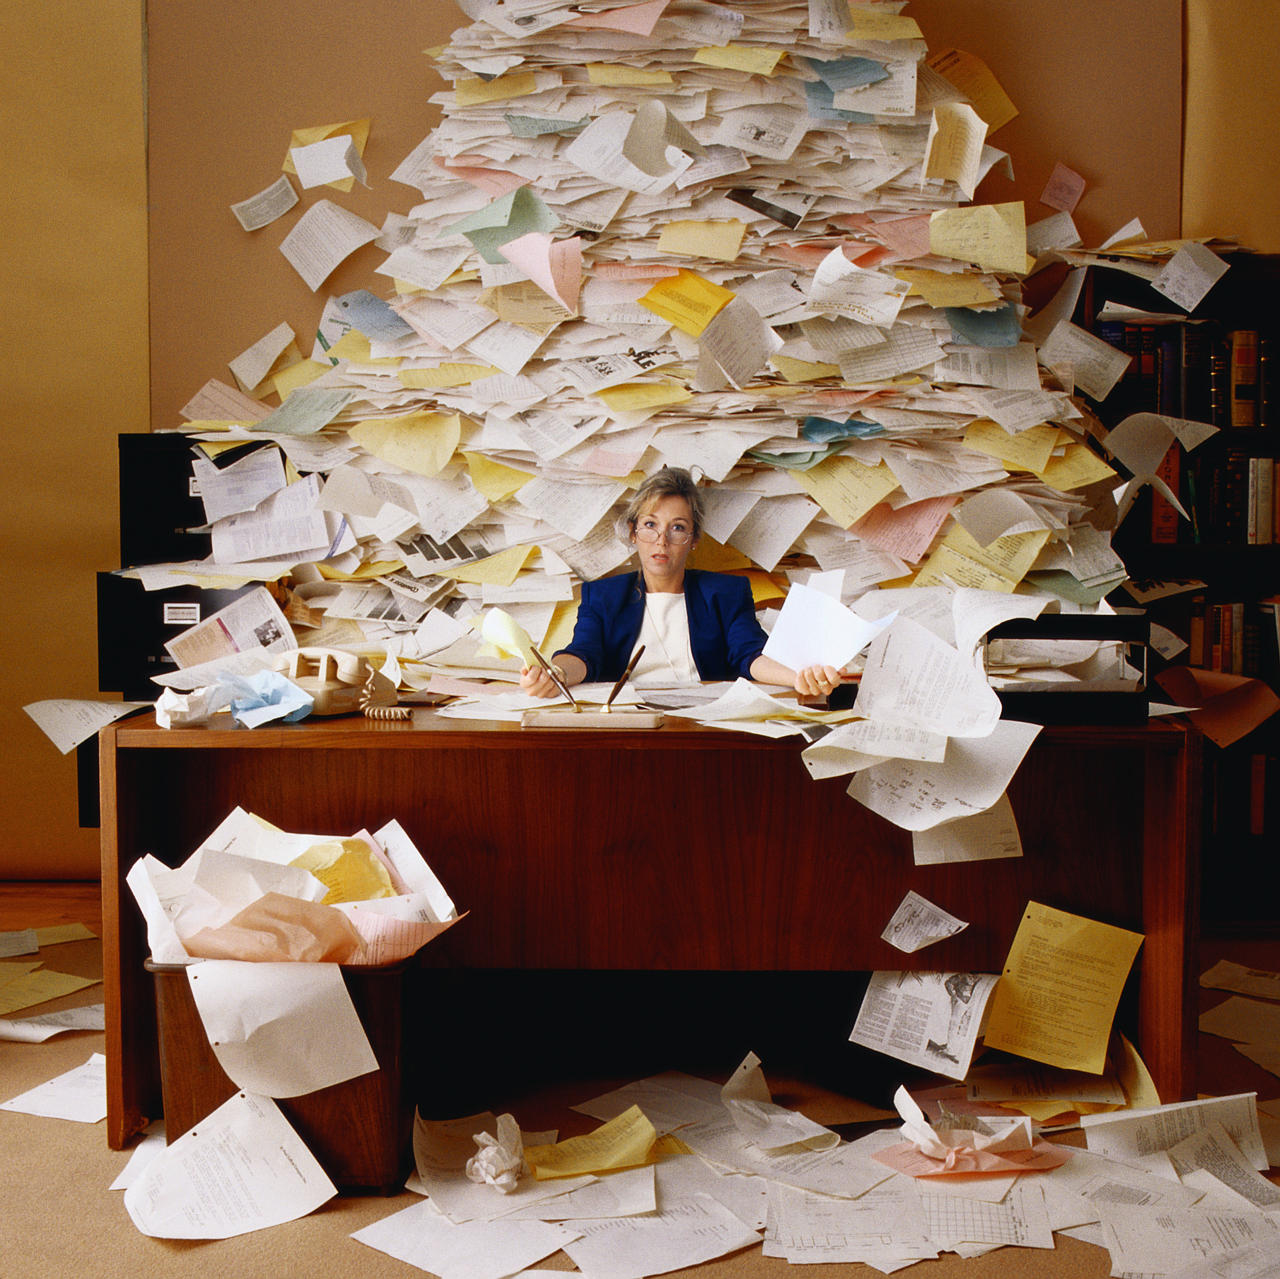 A woman surrounded by a deluge of paper work